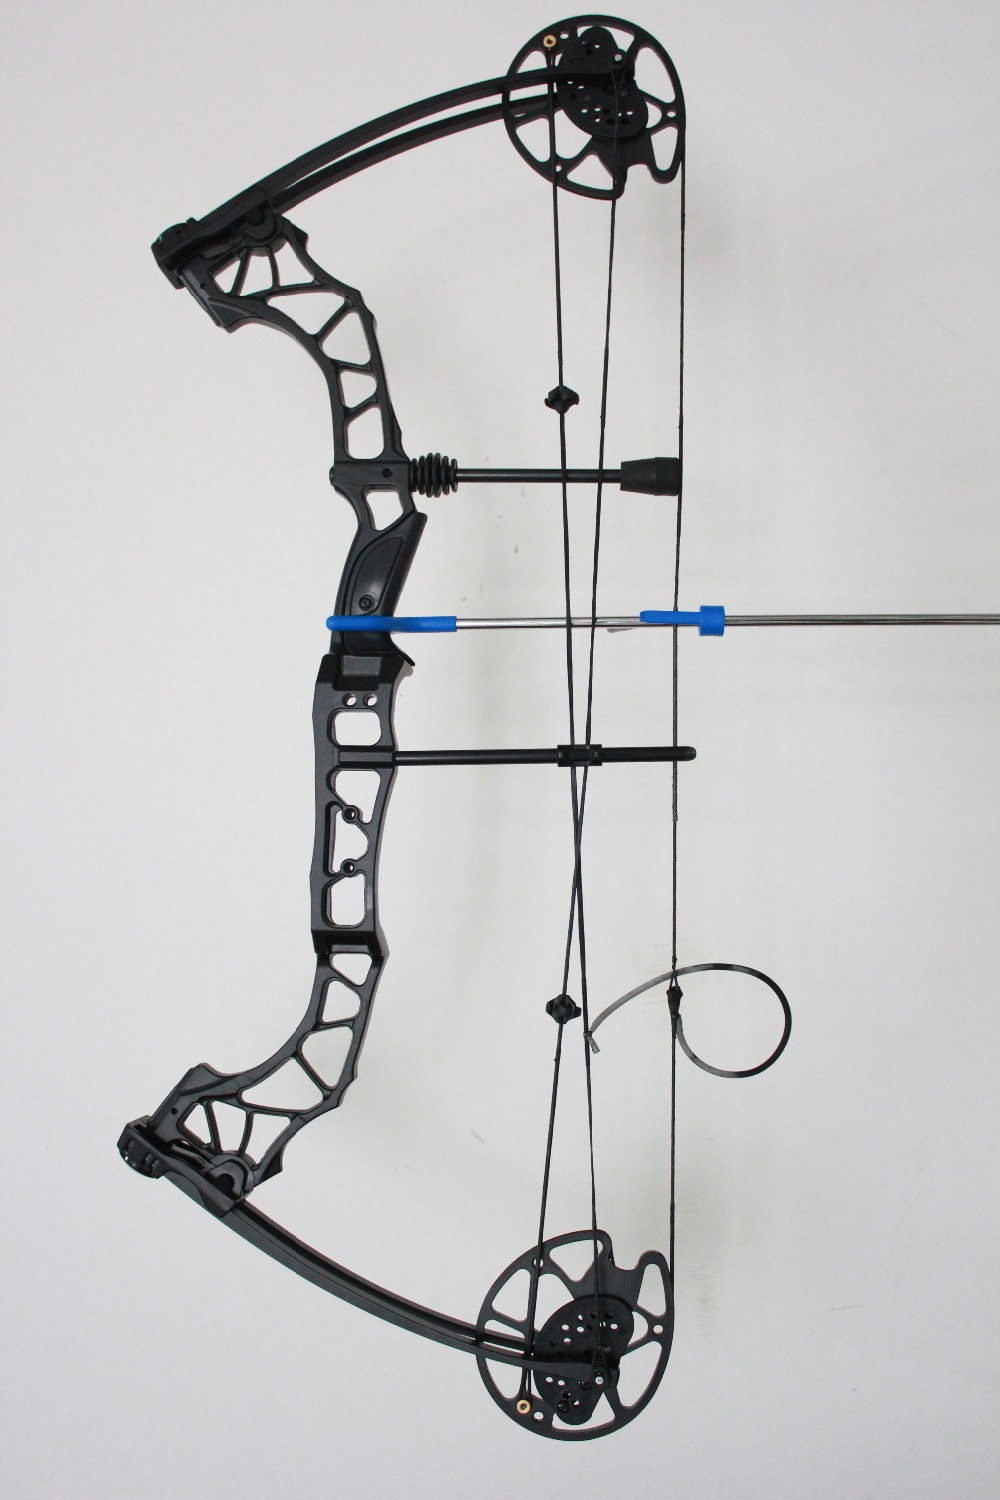 kaimei-qin-high-quality-outdoor-sports-right-hand-hunting-compound-bow-with-free-shipping-and-accessories